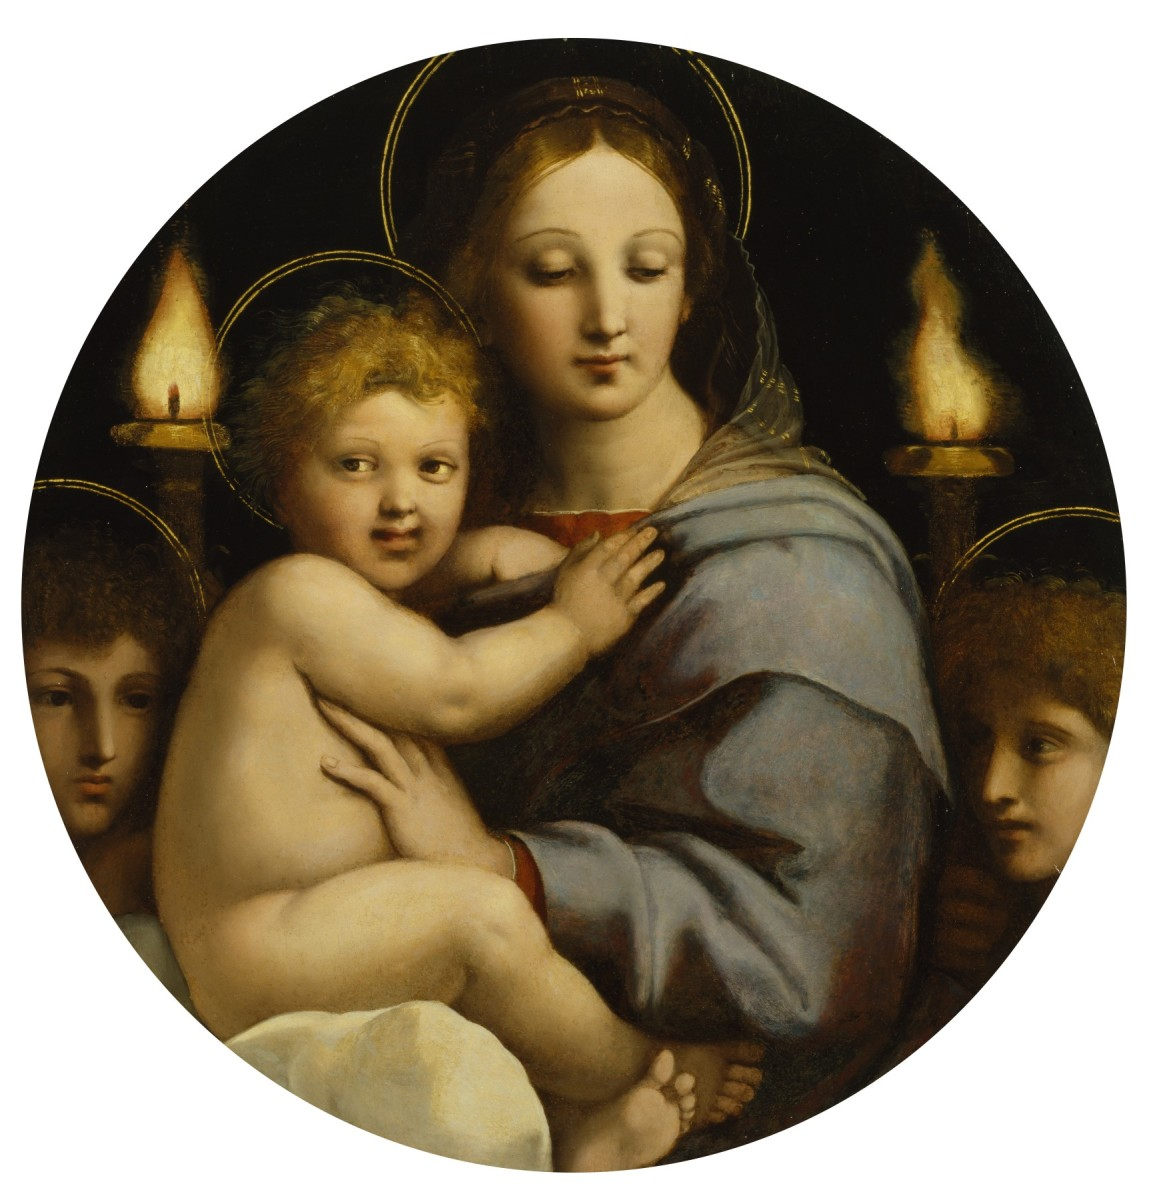 A painting by Raphael at the Walter's Museum of Art